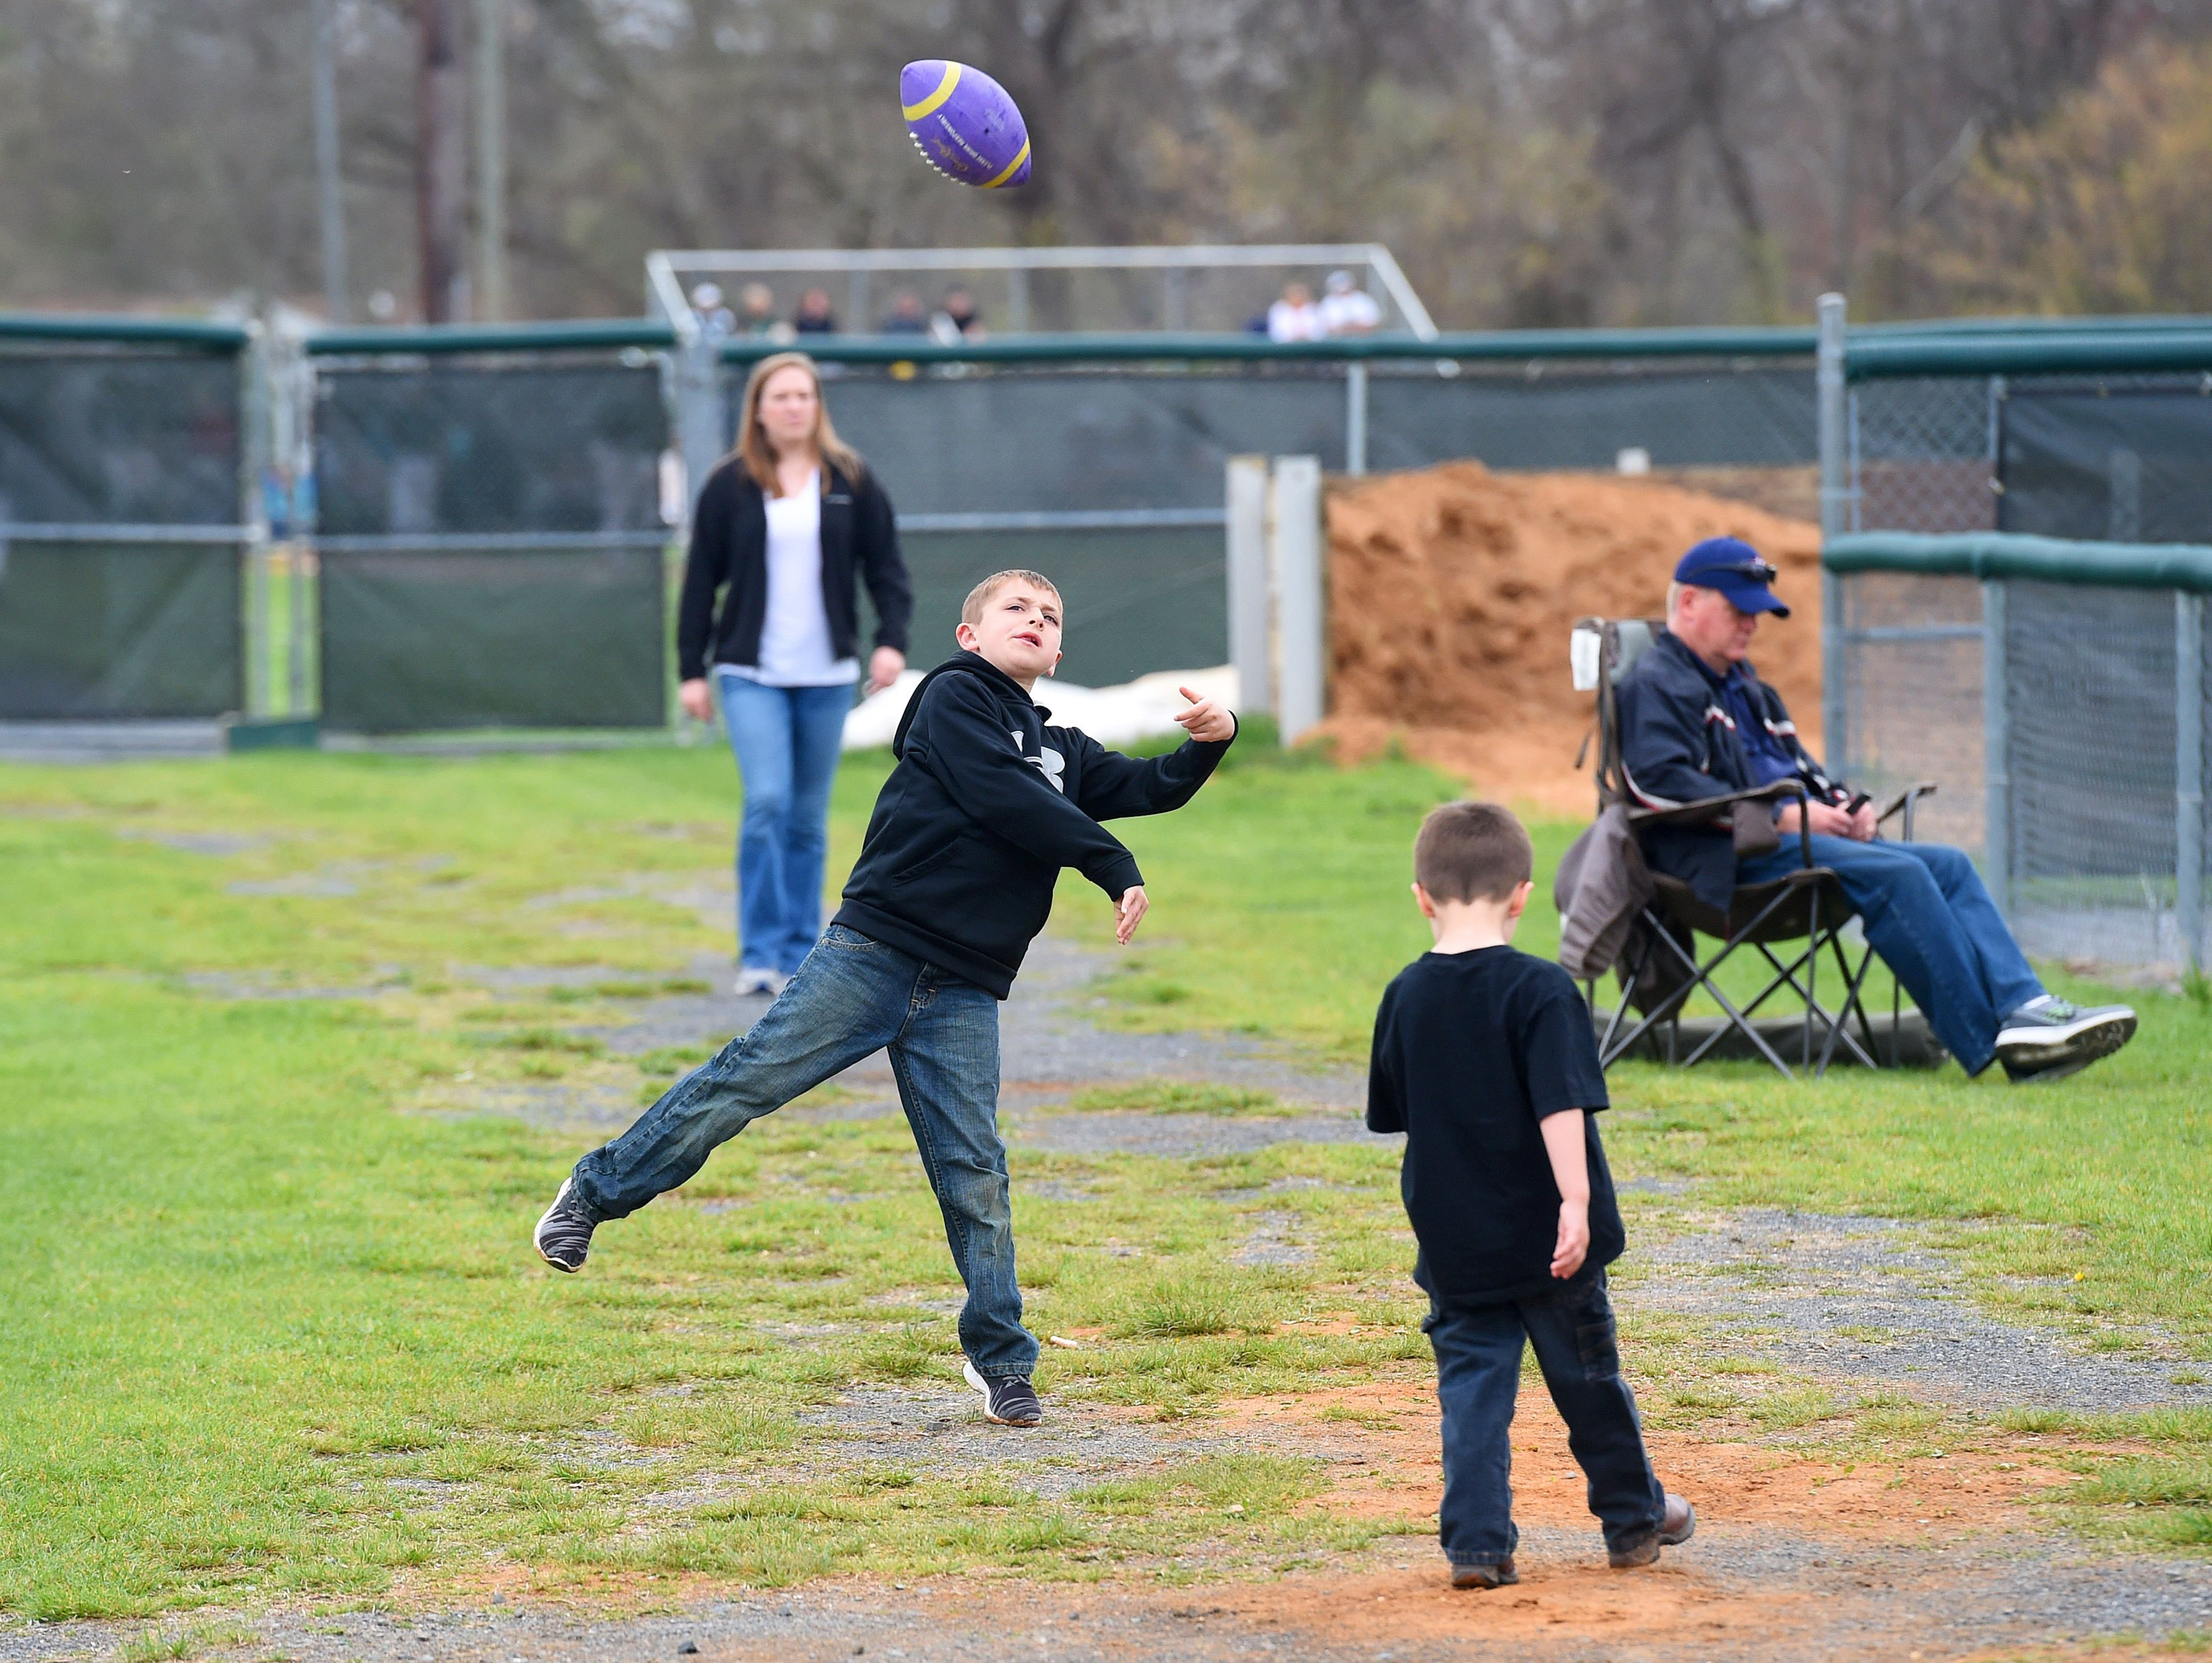 Tristan Clark, 9, of Churchville tosses the football with friends alongside the softball field before the start of a game between Buffalo Gap and Wilson Memorial high schools, played in Fishersville on Friday, April 1, 2016.